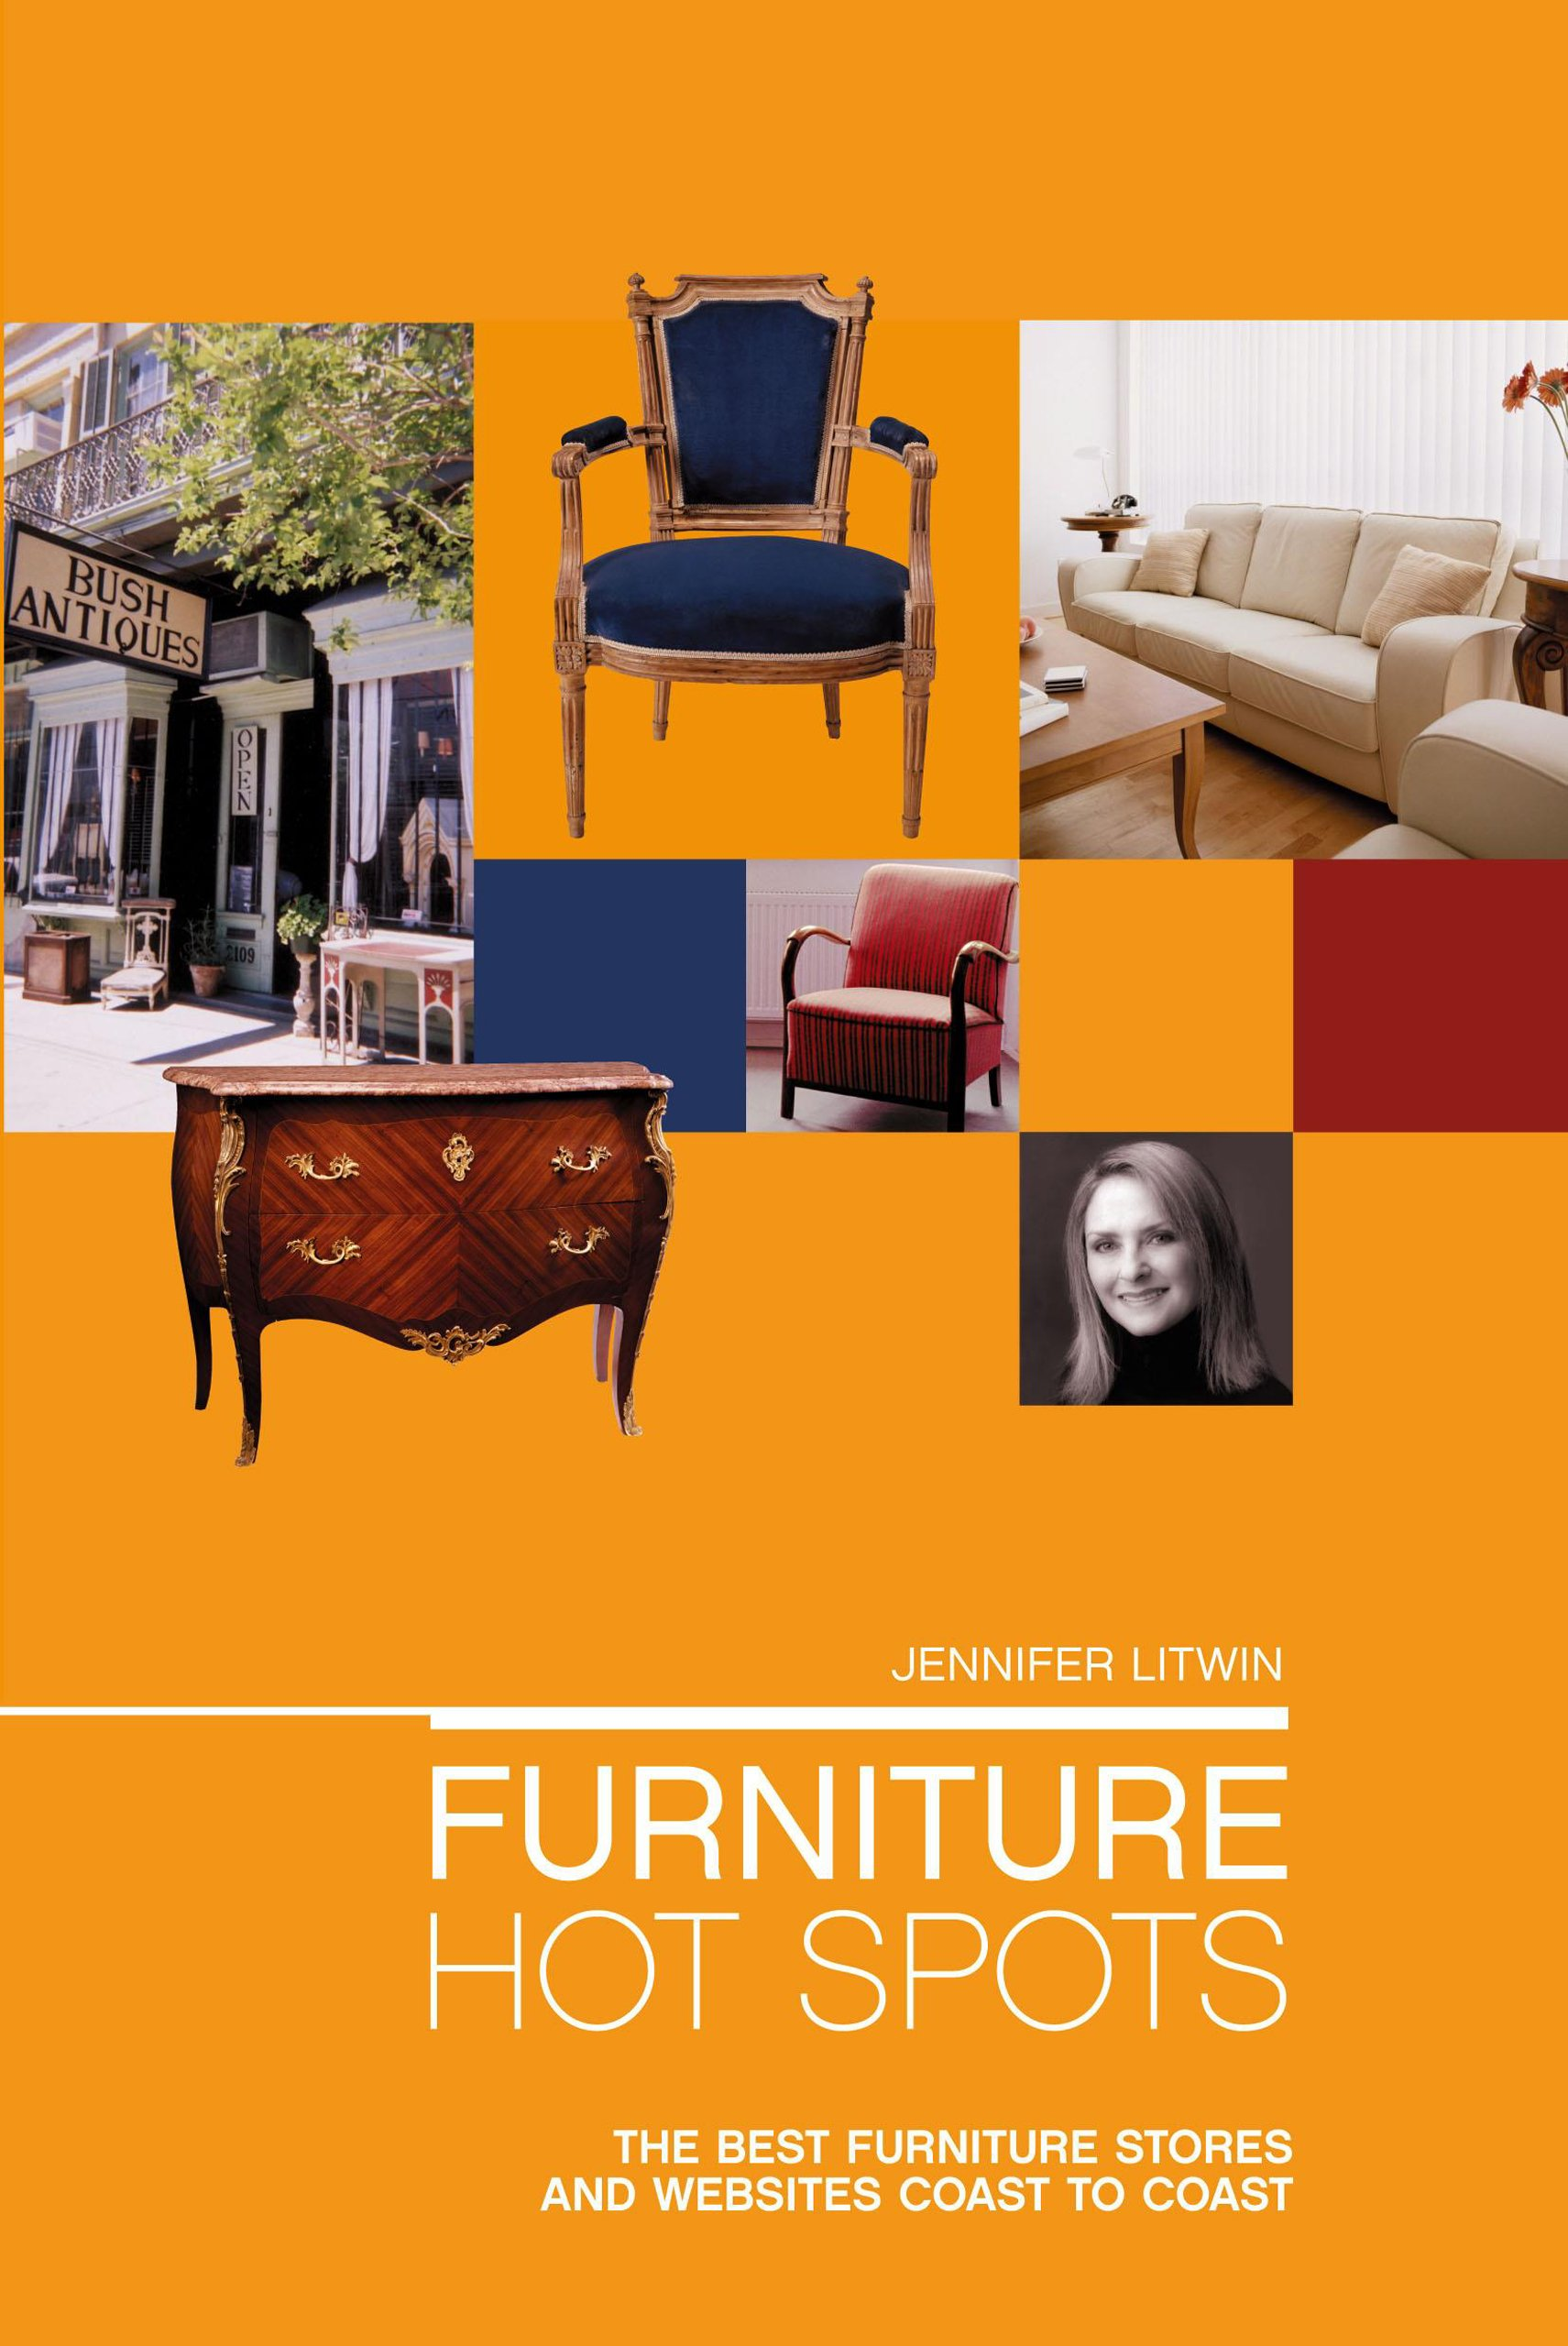 Furniture Hot Spots: The Best Furniture Stores And Websites Coast To Coast:  Jennifer Litwin: 9781592285891: Amazon.com: Books